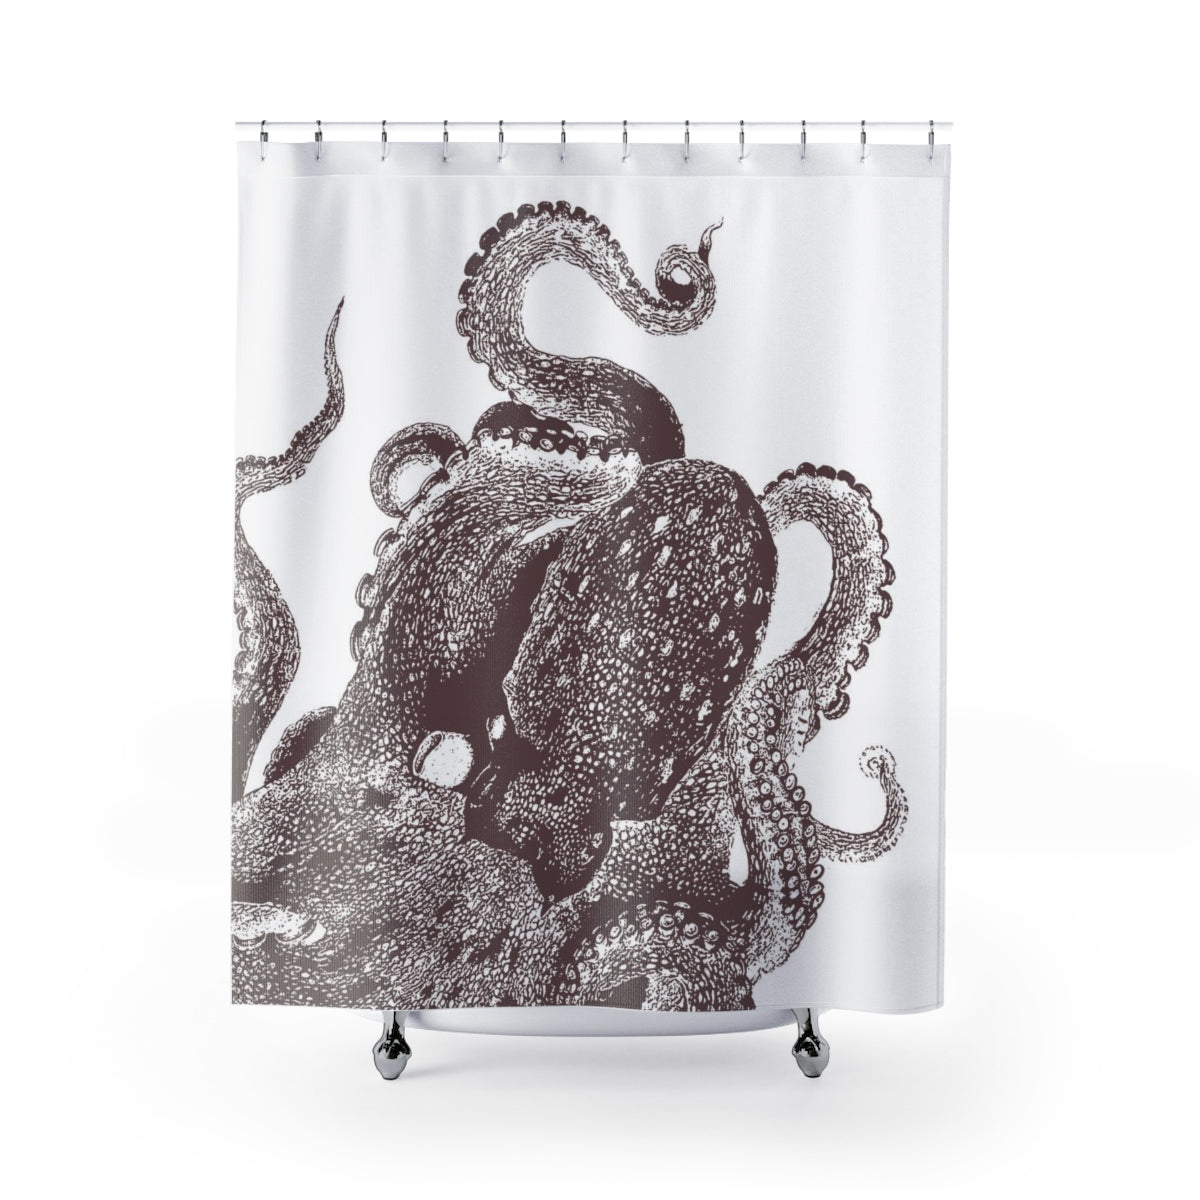 Brown and White Octopus Shower Curtain - Metro Shower Curtains